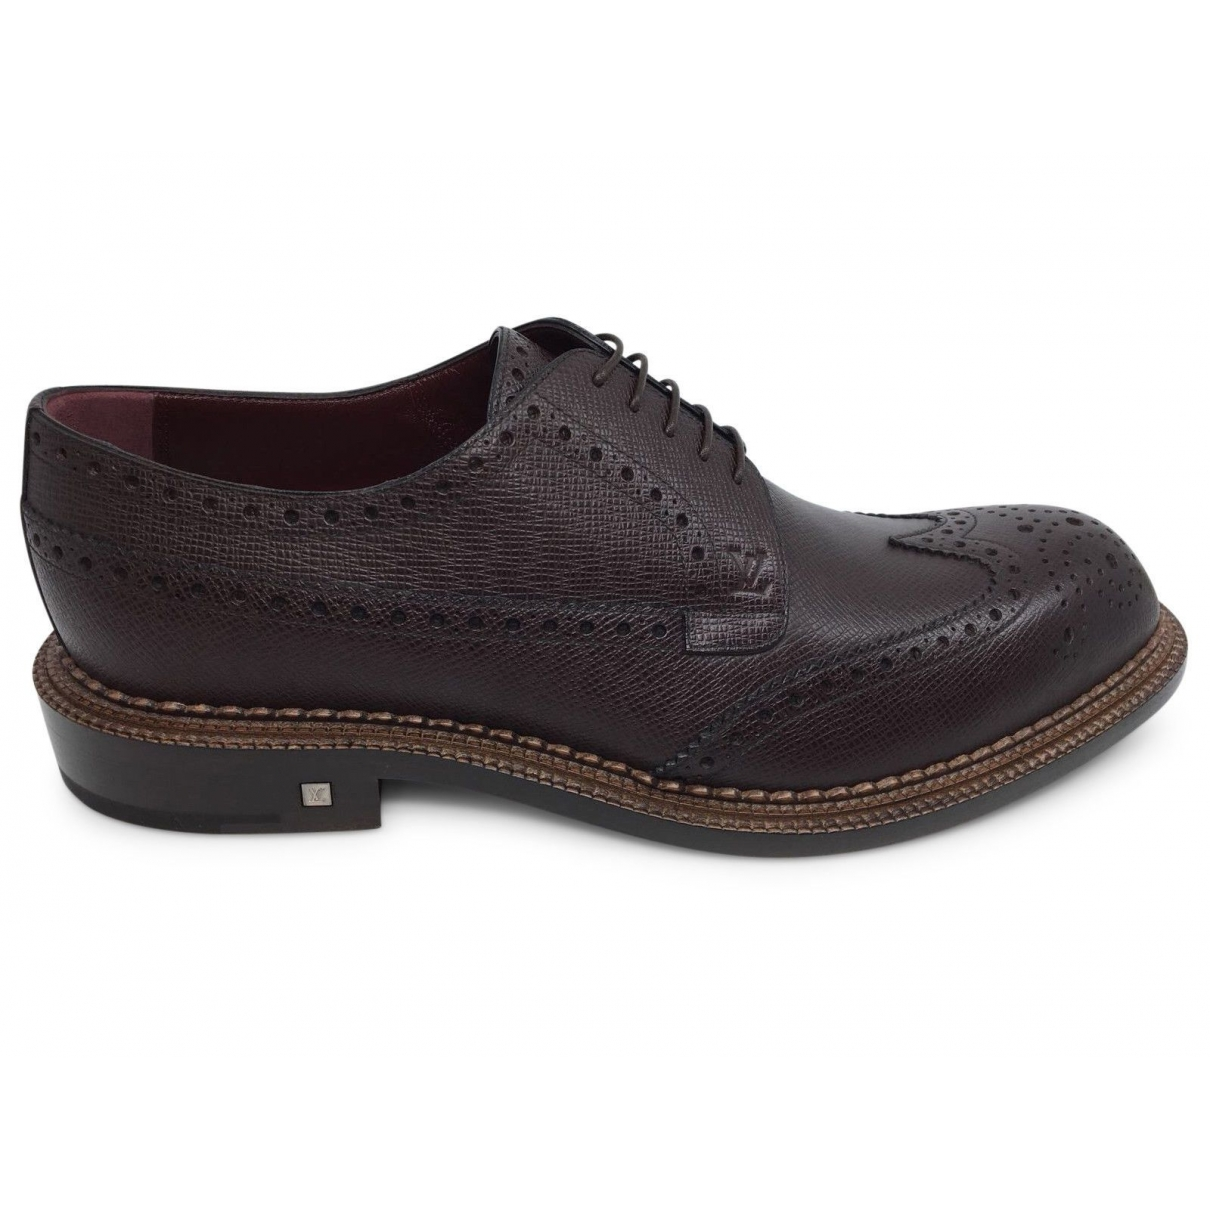 Louis Vuitton \N Brown Leather Lace ups for Men 8.5 UK